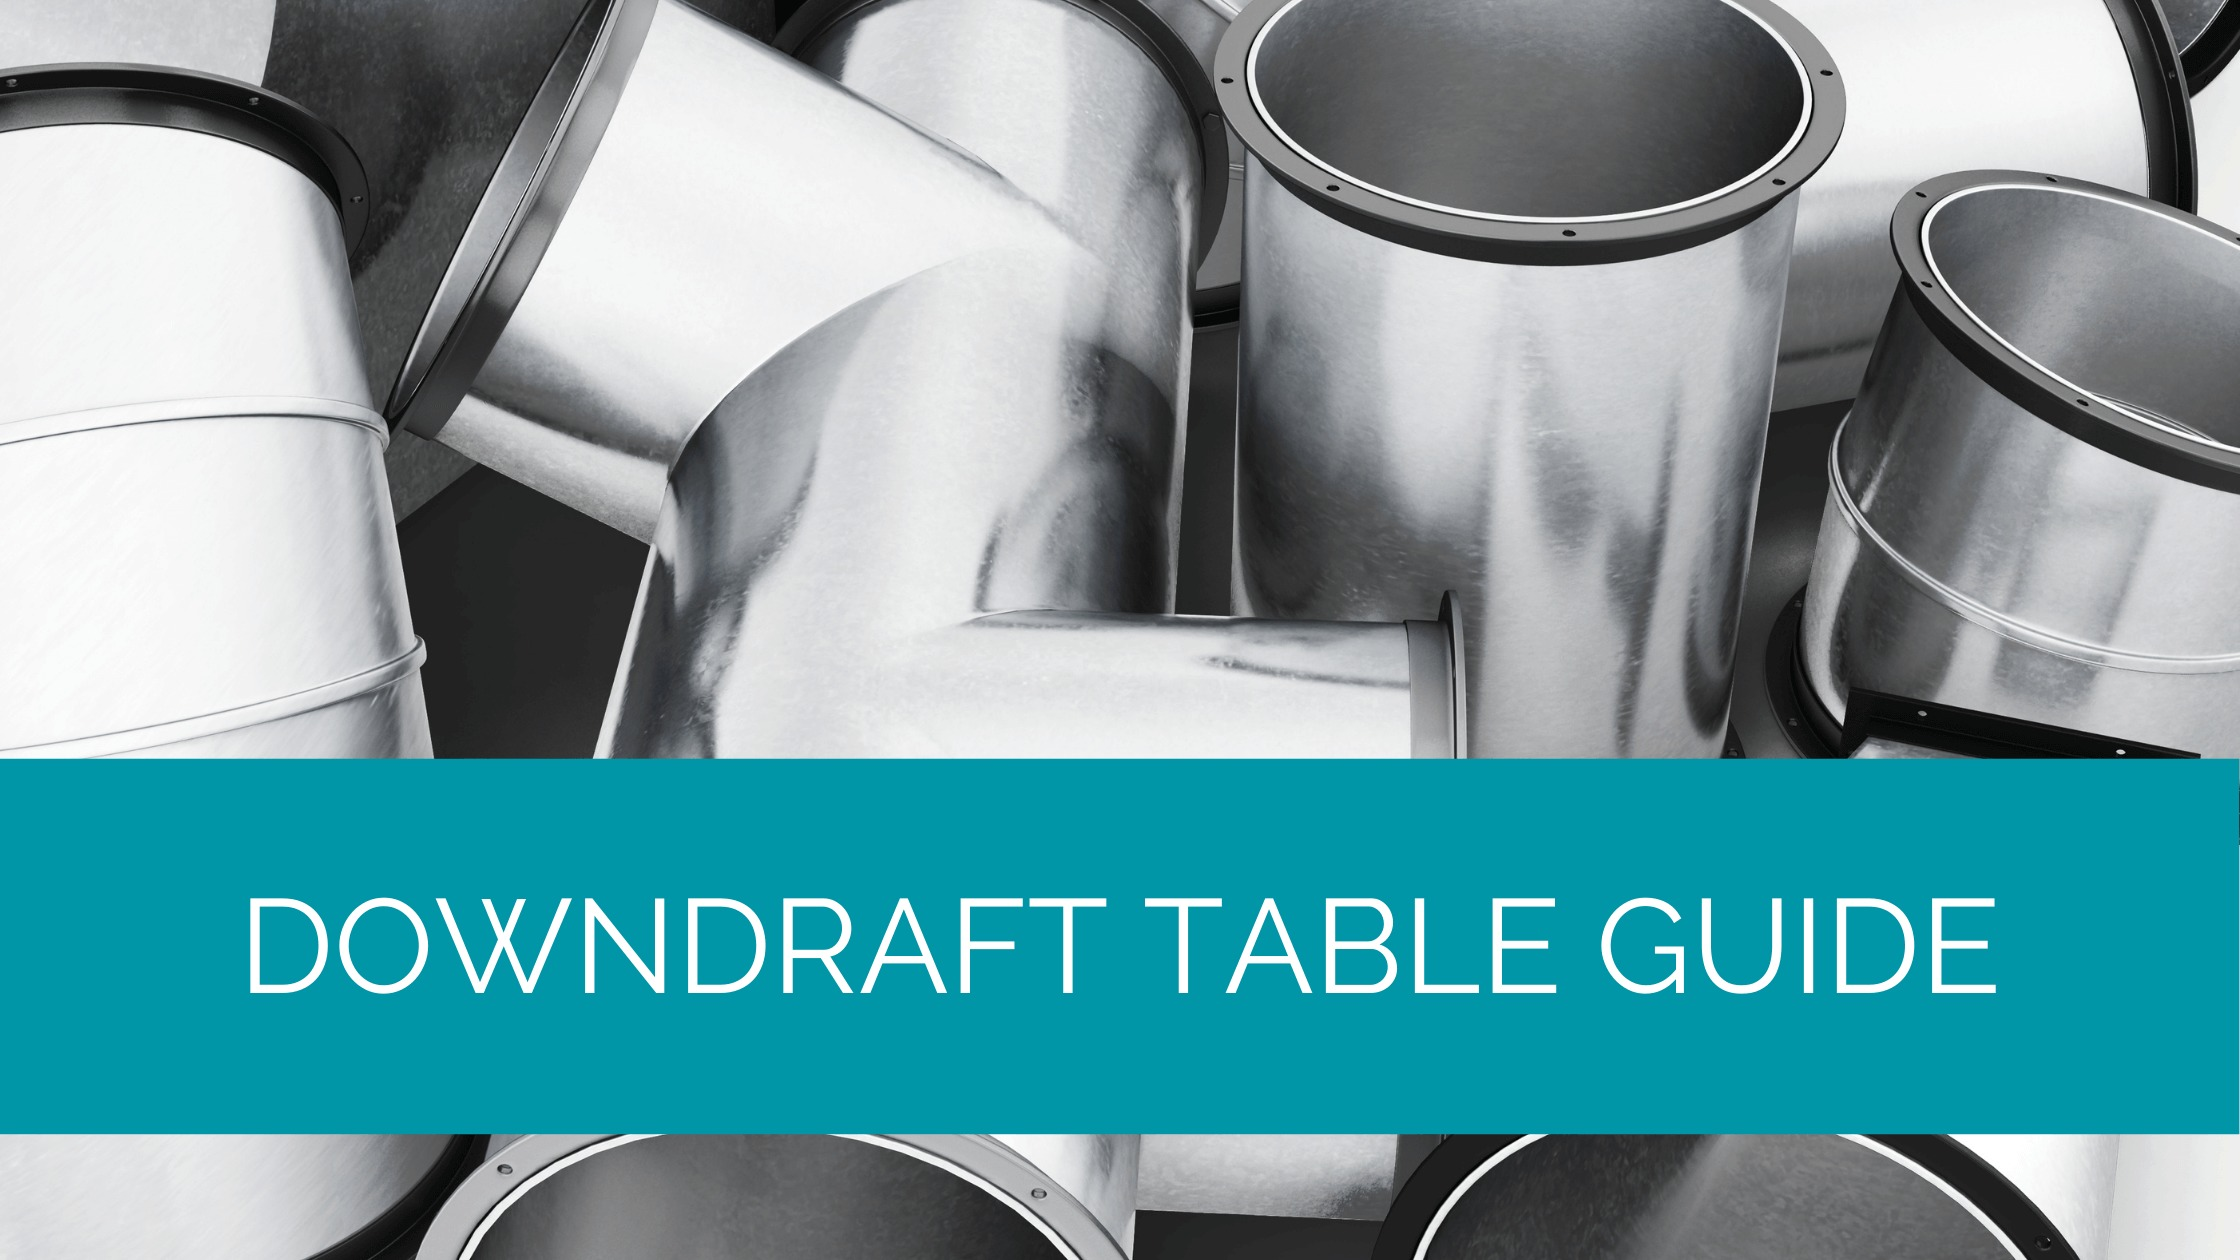 Downdraft Table Guide